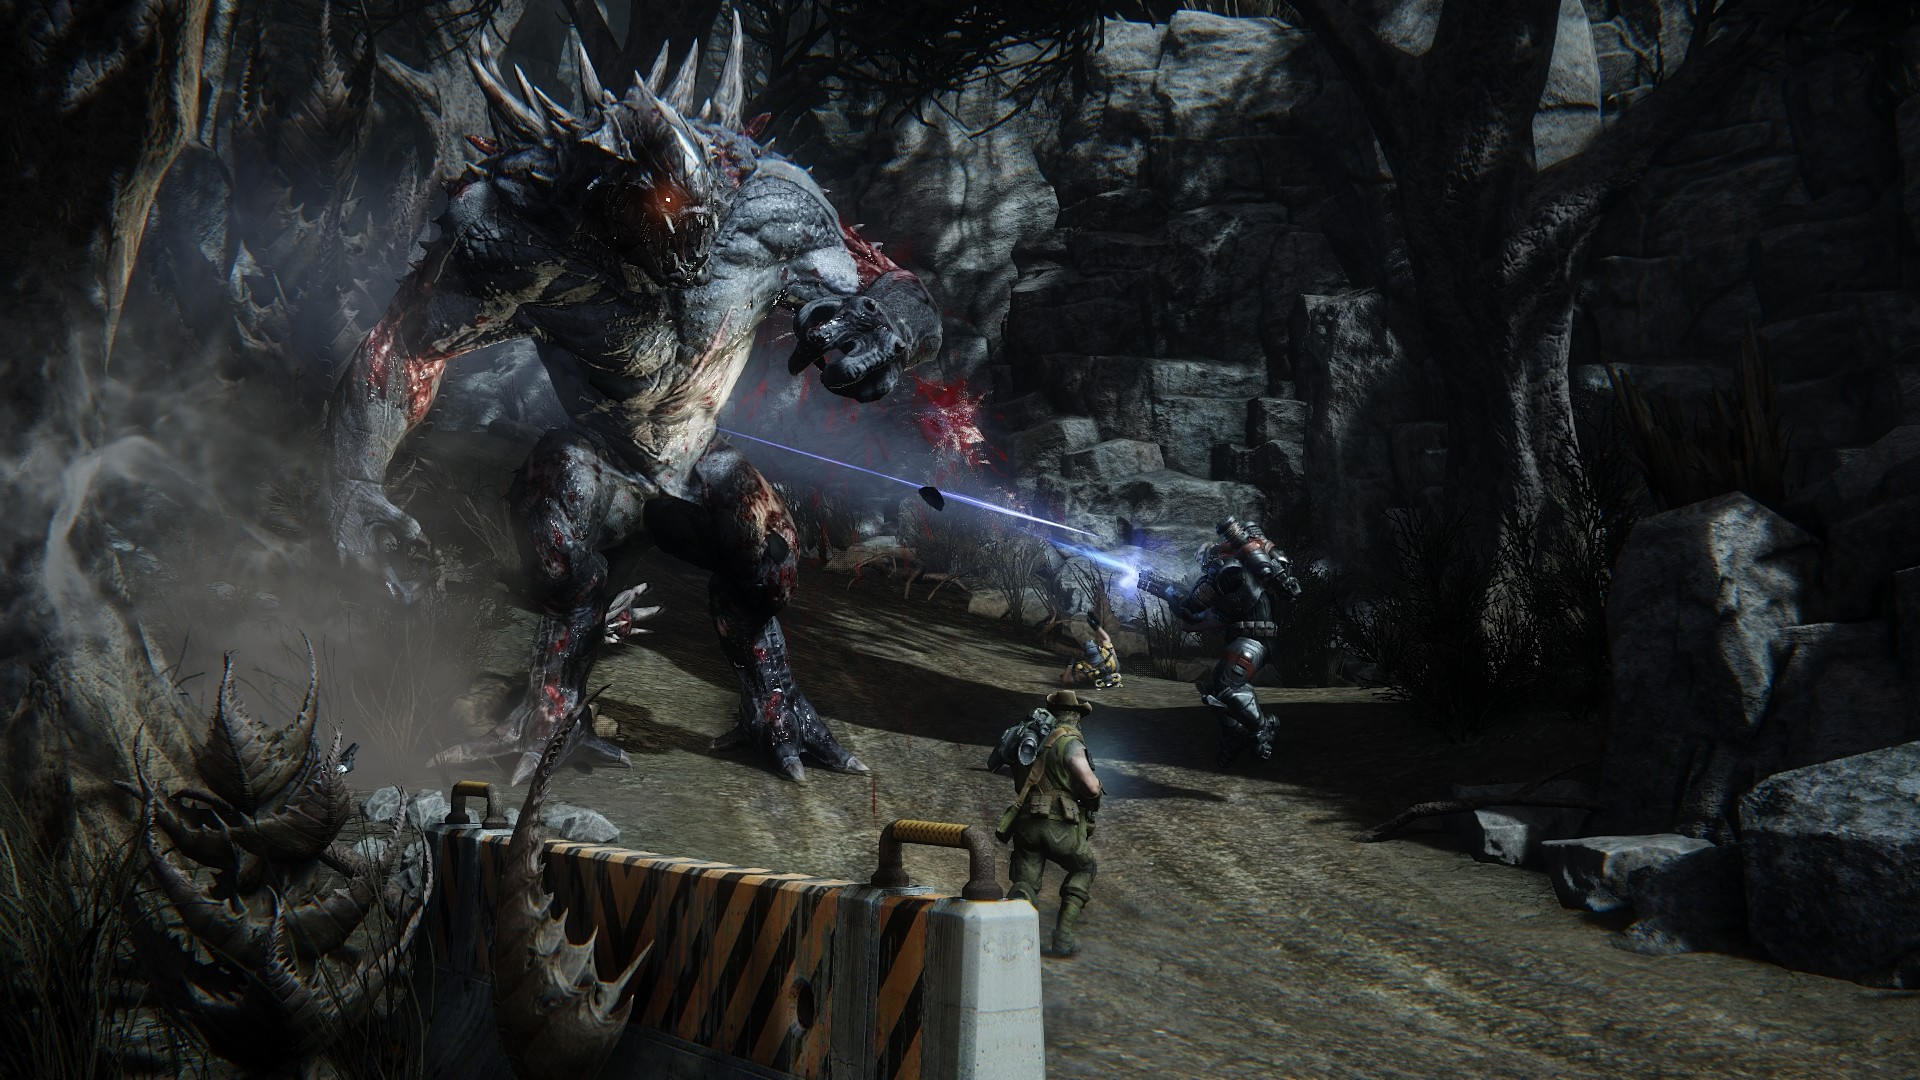 Gaming Insider Cyberland PC reported that Evolve is rumored to run at 1080p  60 fps using cards from the GTX 500 series, namely the 570 and the 580.